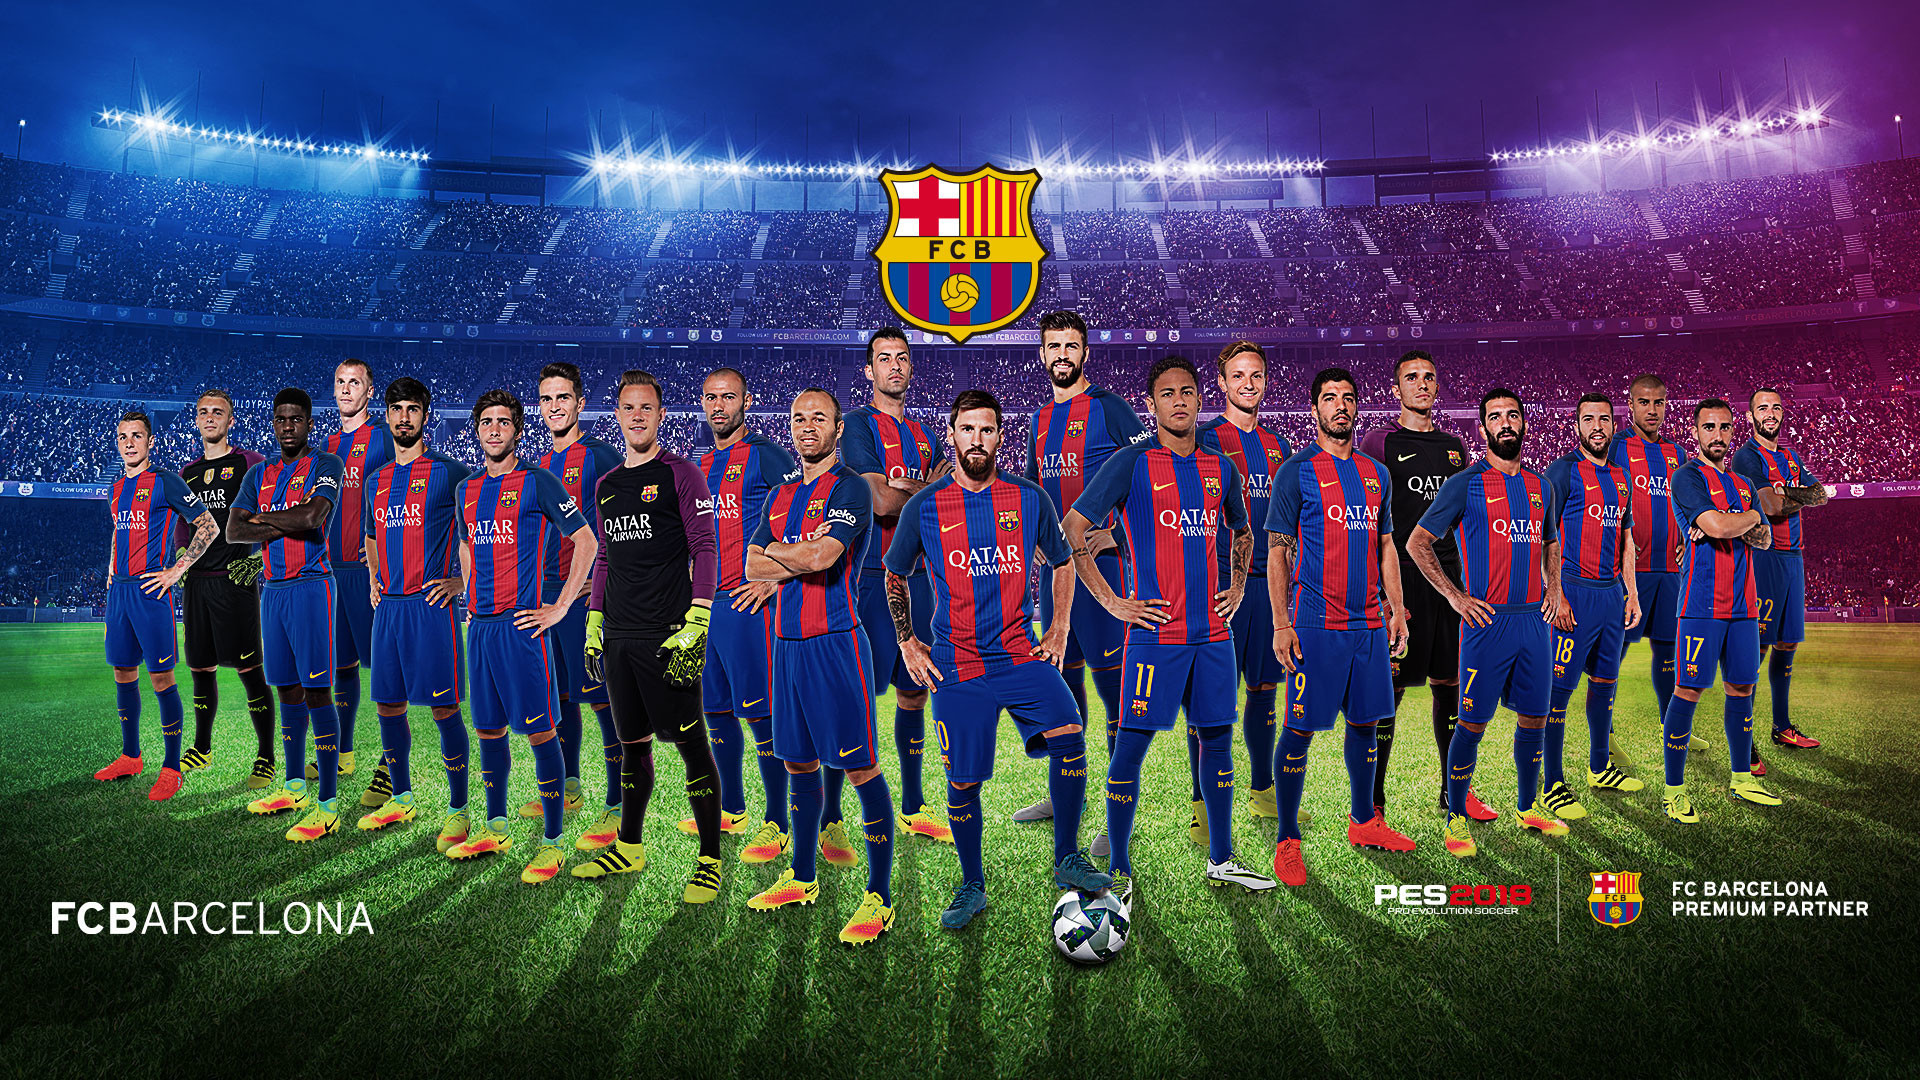 Res: 1920x1080, FC Barcelona Wallpapers 21 - 1920 X 1080